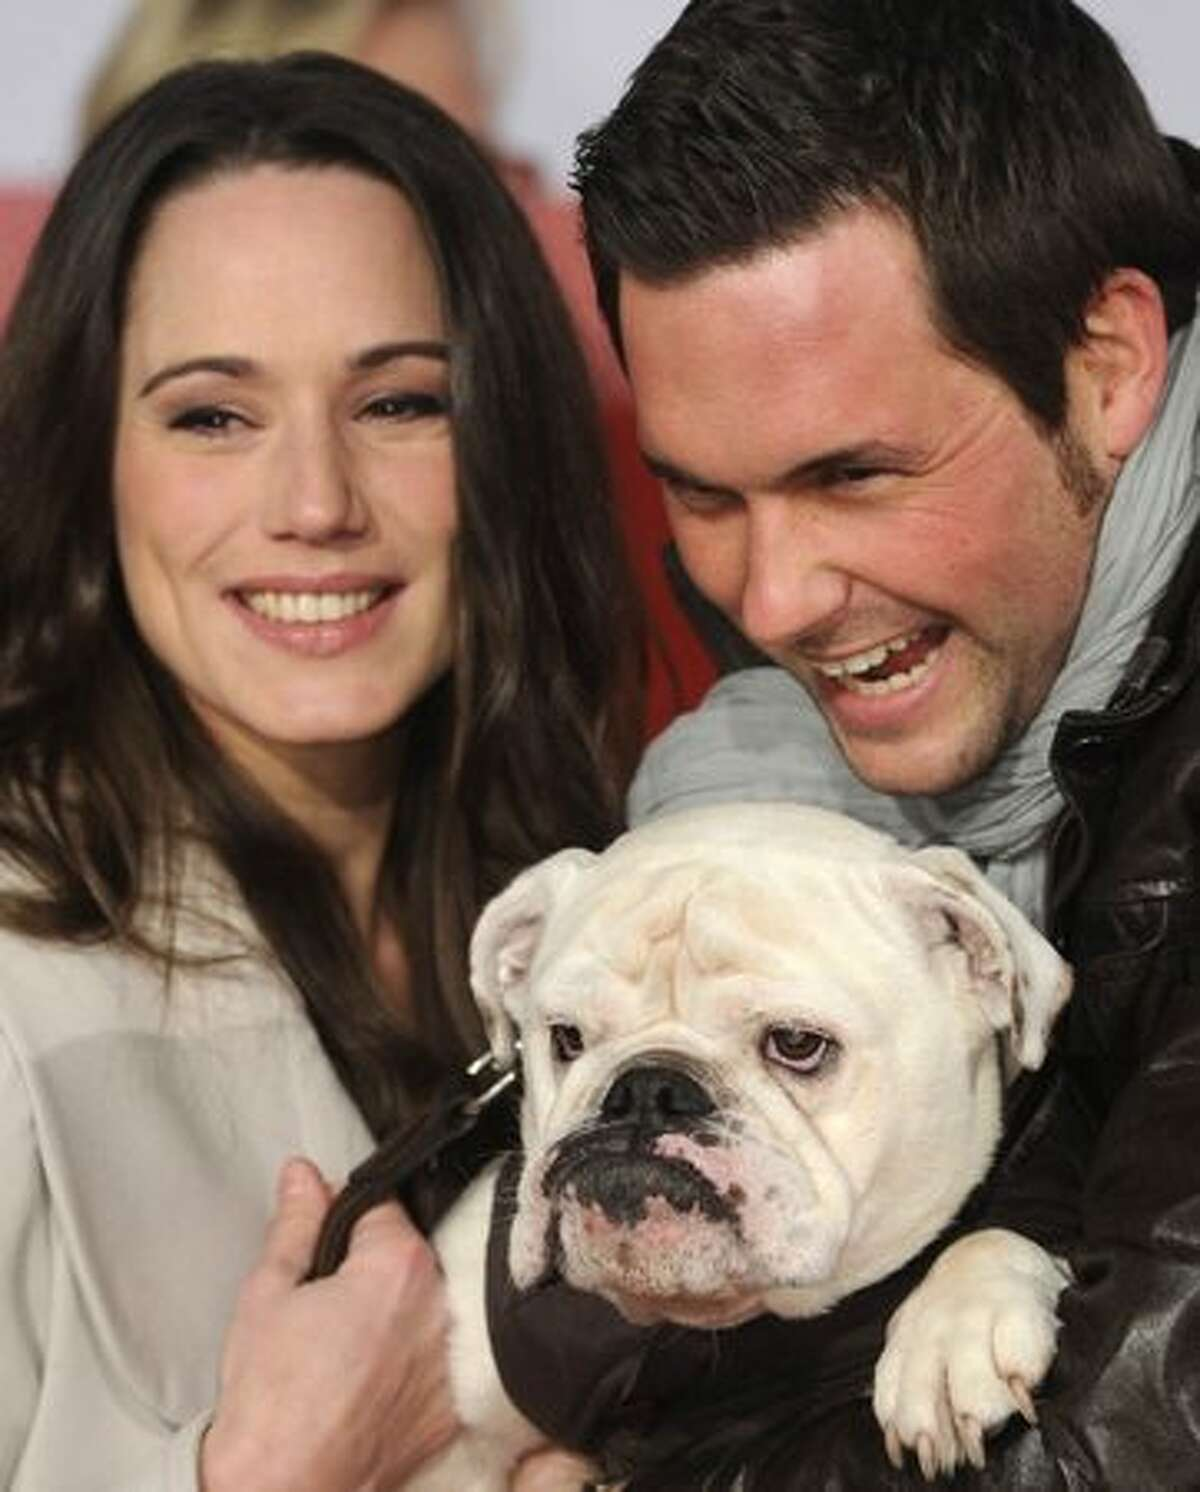 German TV presenters Simone Panteleit and Matthias Killing pose with dog Lotte before the premiere of the movie